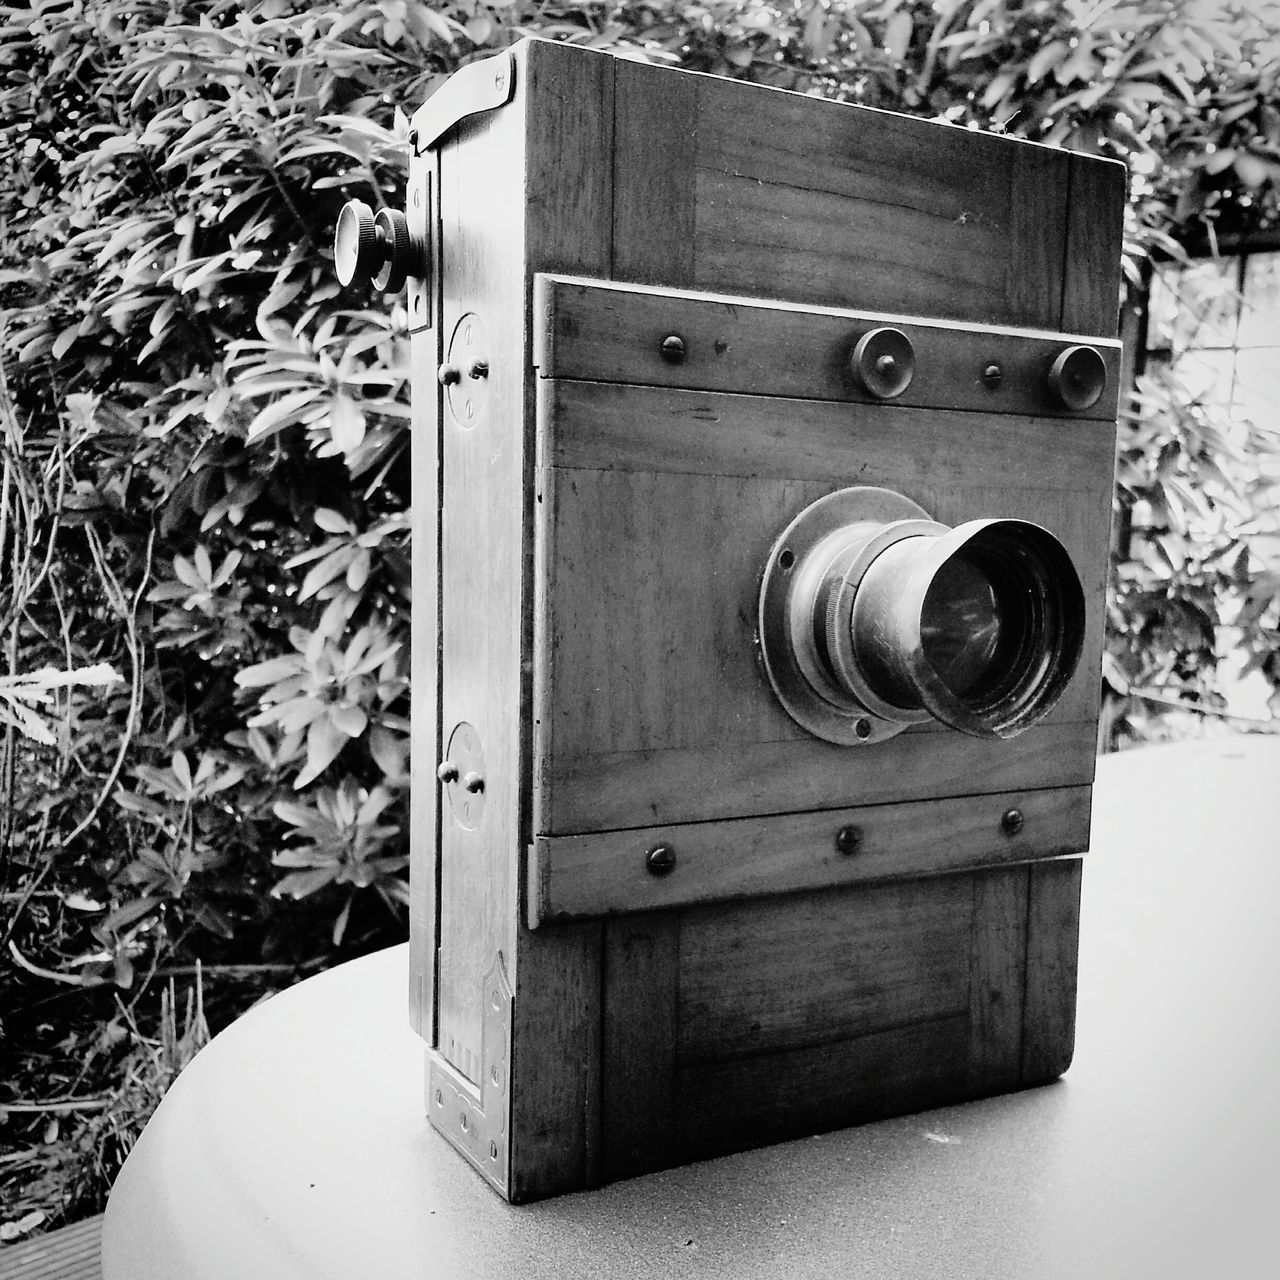 Camera of my grandfather Camera Antique Blackandwhite Photography Photography Hello World Antiquitäten Holz Wood Camera - Photographic Equipment Camera+ Wooden Vintage Vintage Camera